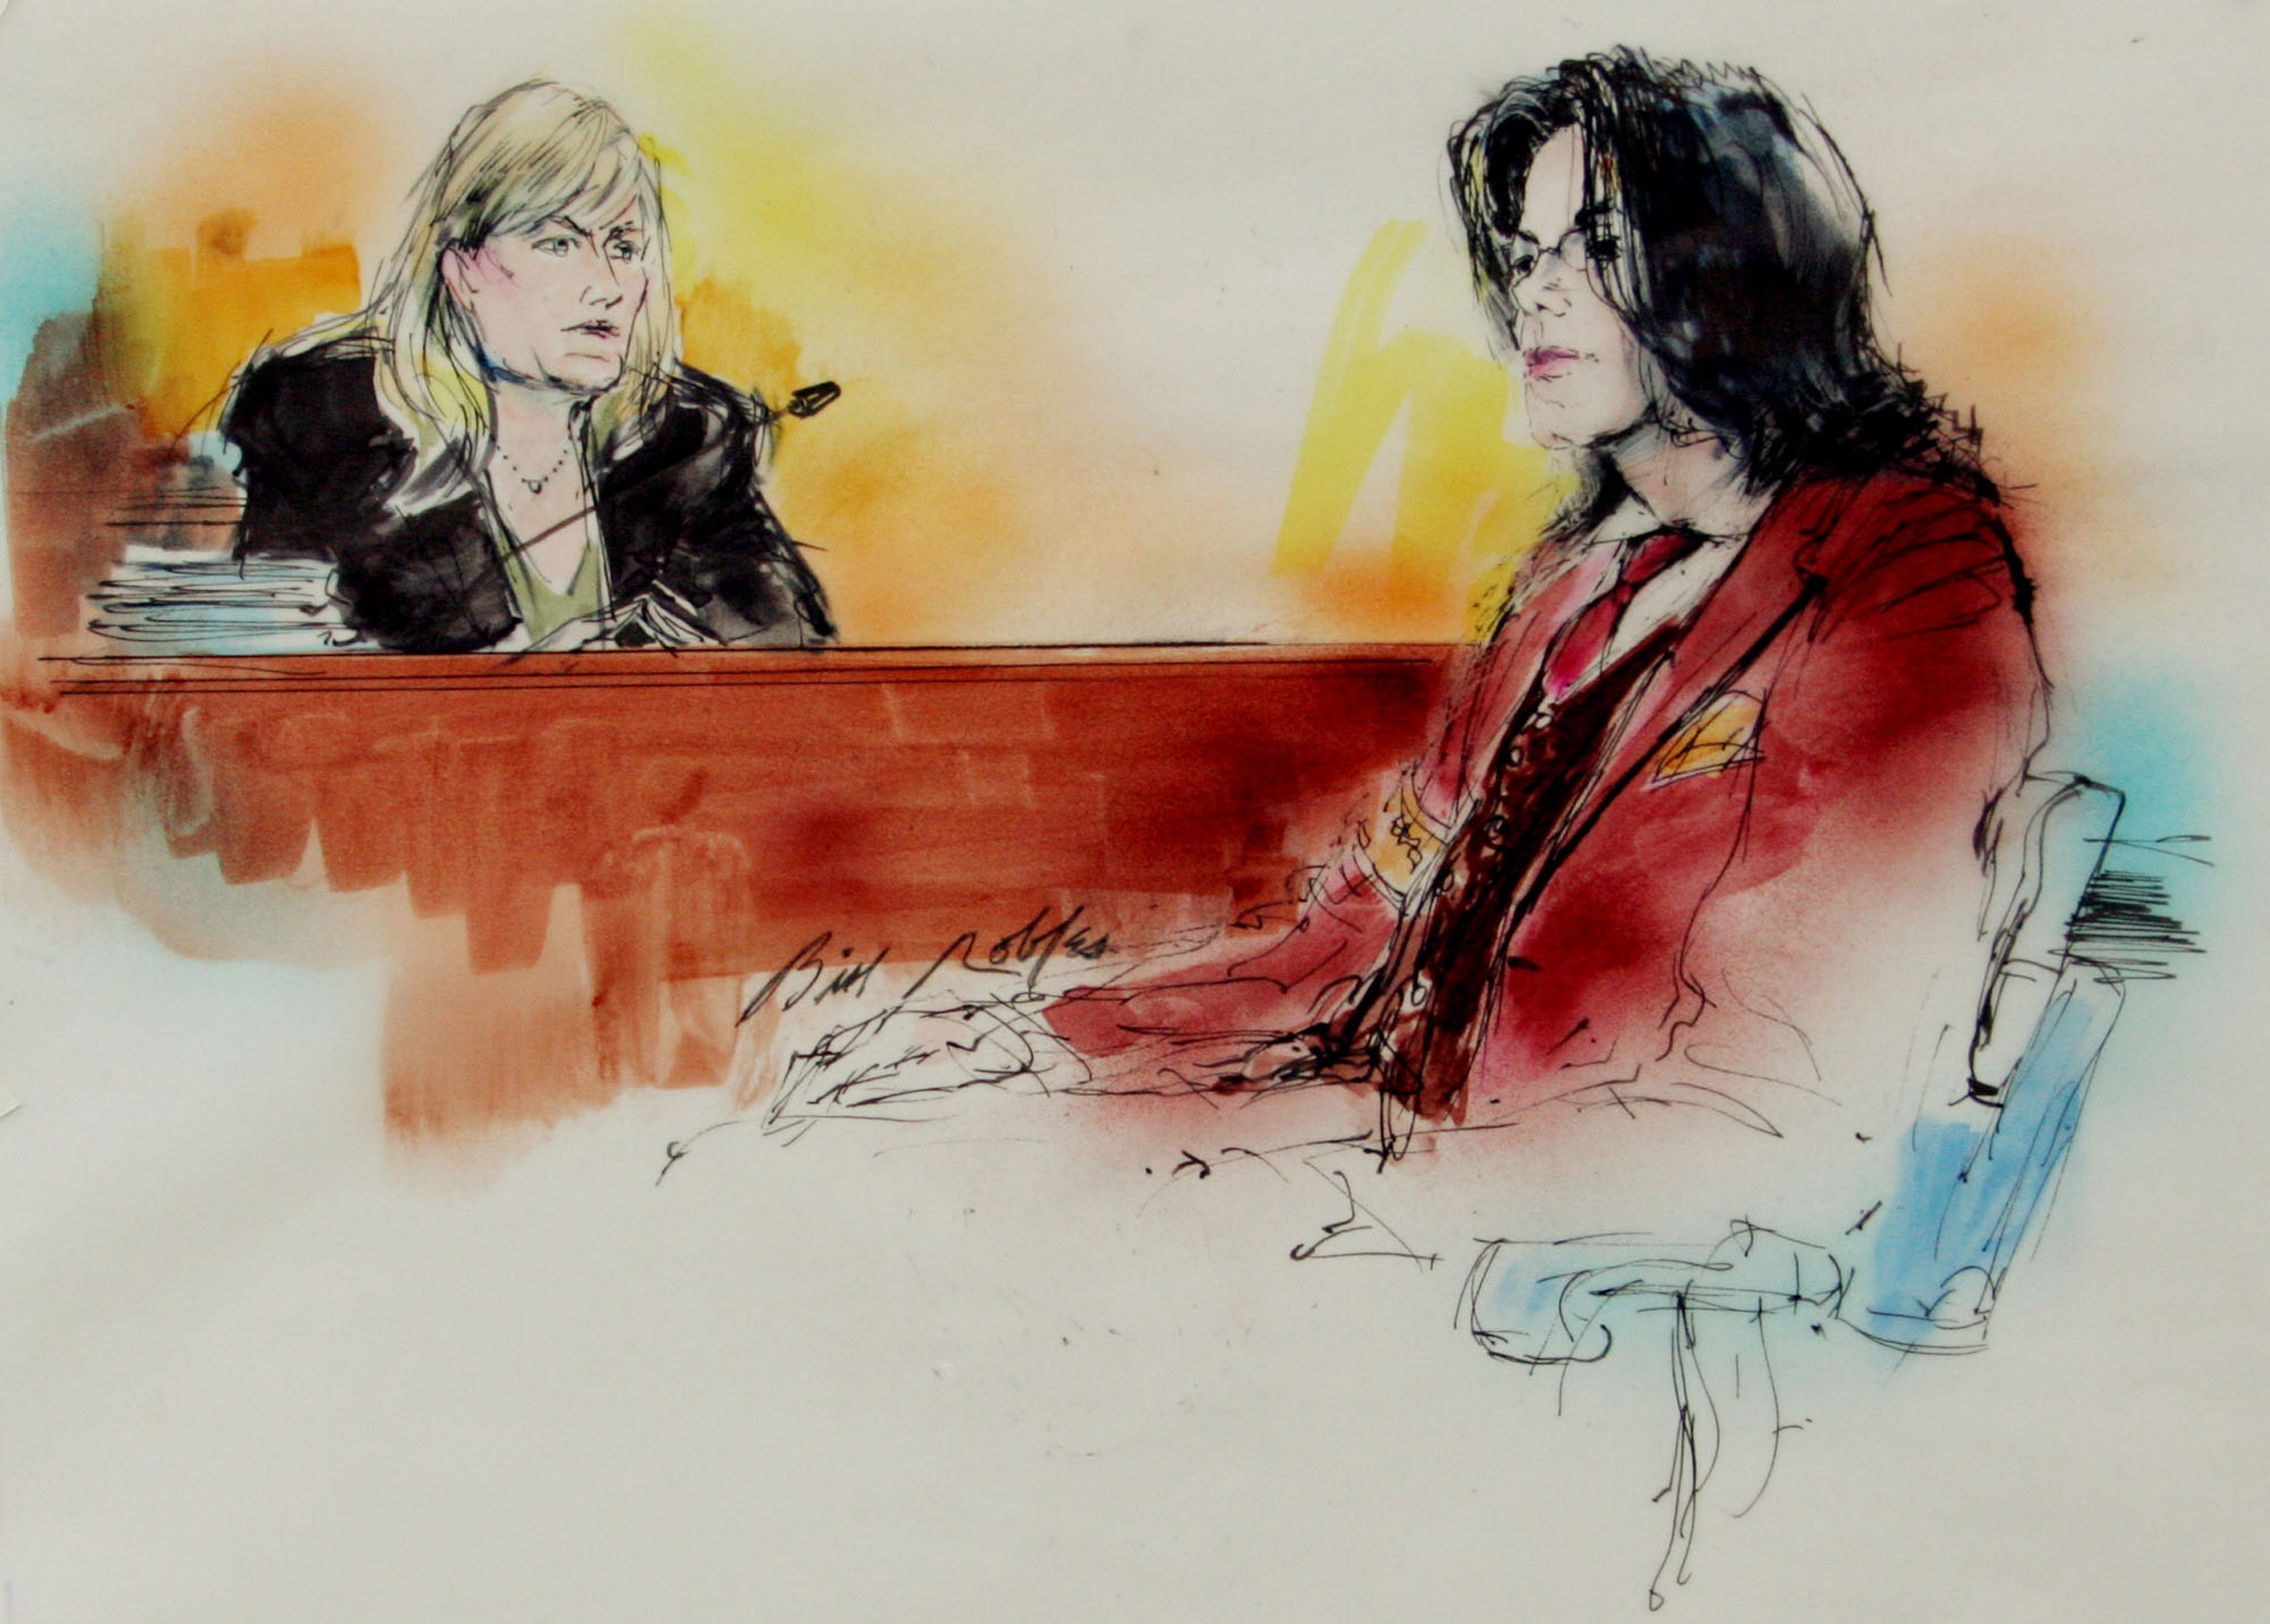 Michael Jackson and his ex-wife Debbie Rowe seated in court inside the Santa Barbara County courthouse on April 27, 2005, in Santa Maria, Calif., where Jackson was on trial for child molestation. The jury found Jackson not guilty on all charges.